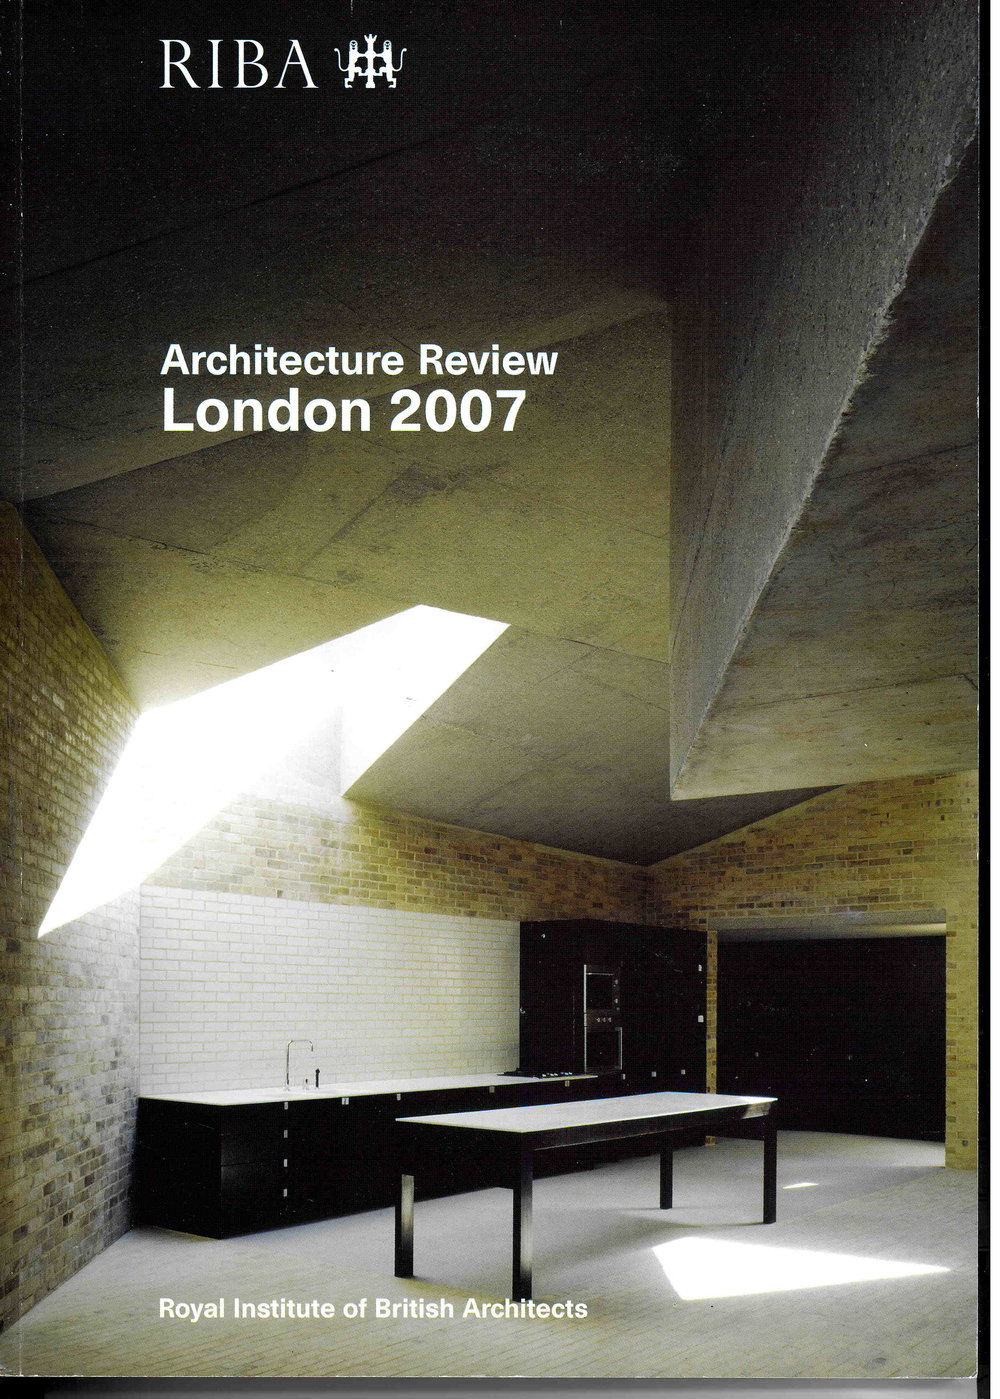 Architecture Review London, 2007